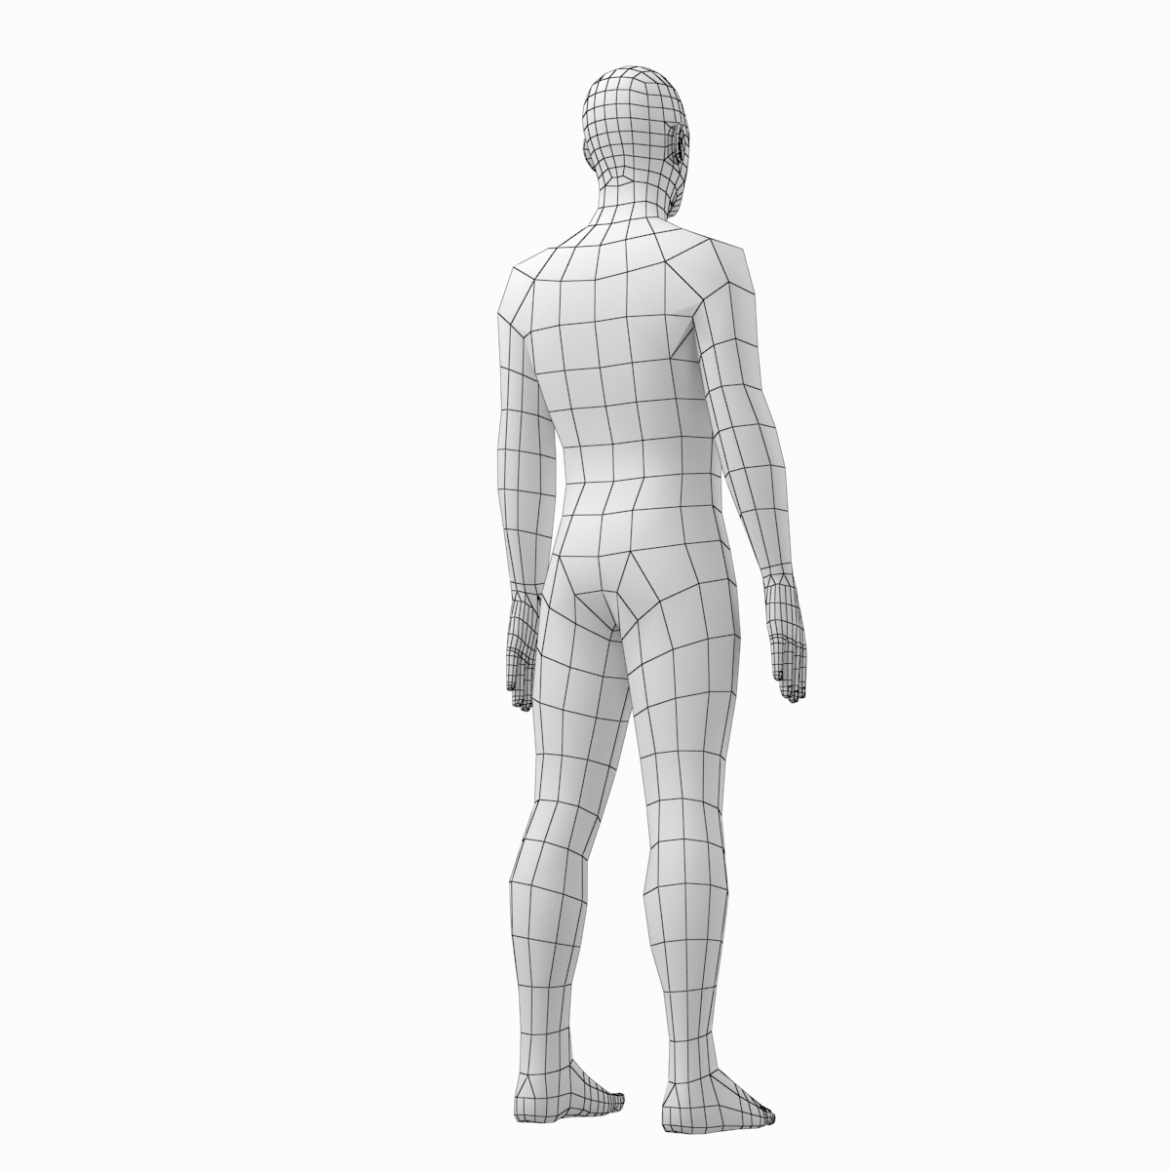 female and male deailed base mesh in rest pose 3d model 3ds max dxf dwg fbx c4d dae ma mb  obj 301302